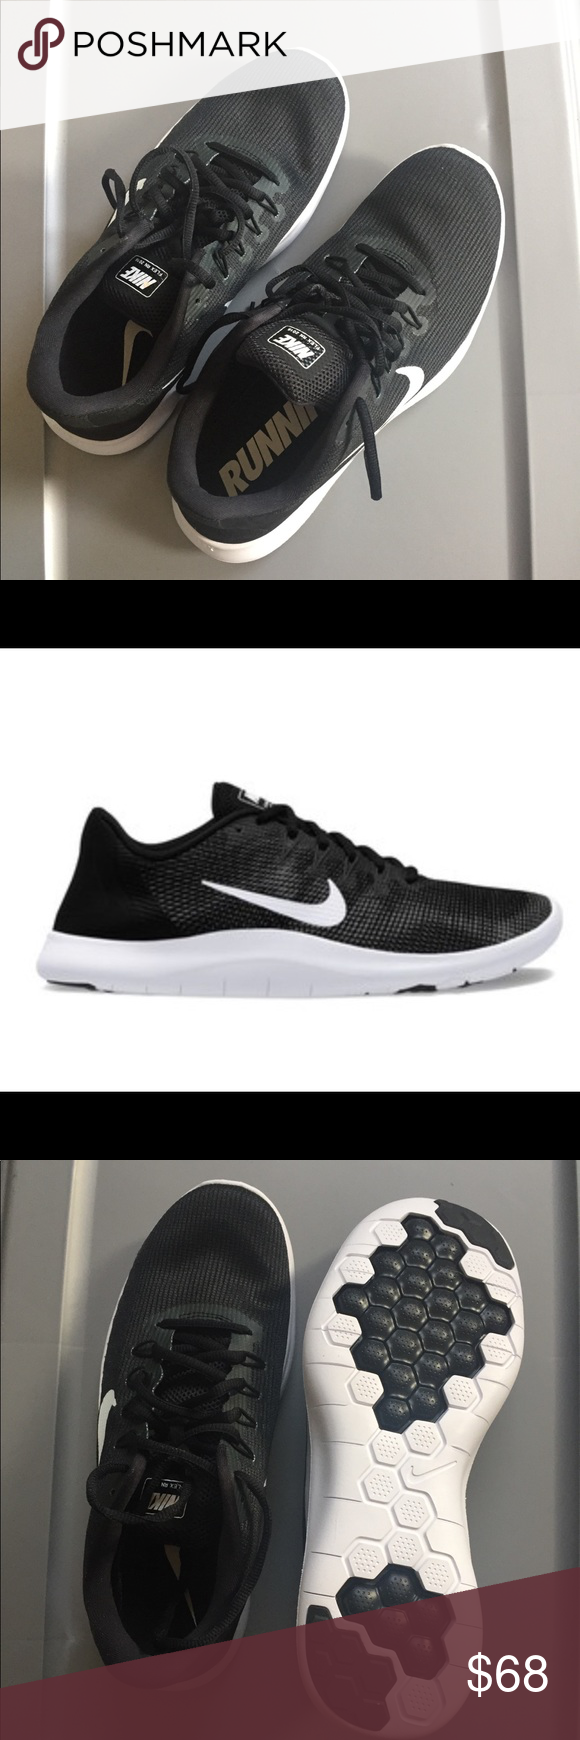 b0526a3663bb Nike Flex 2018 RN Men s Running Shoes Brand new without Box . Dynamic  Flywire cables deliver